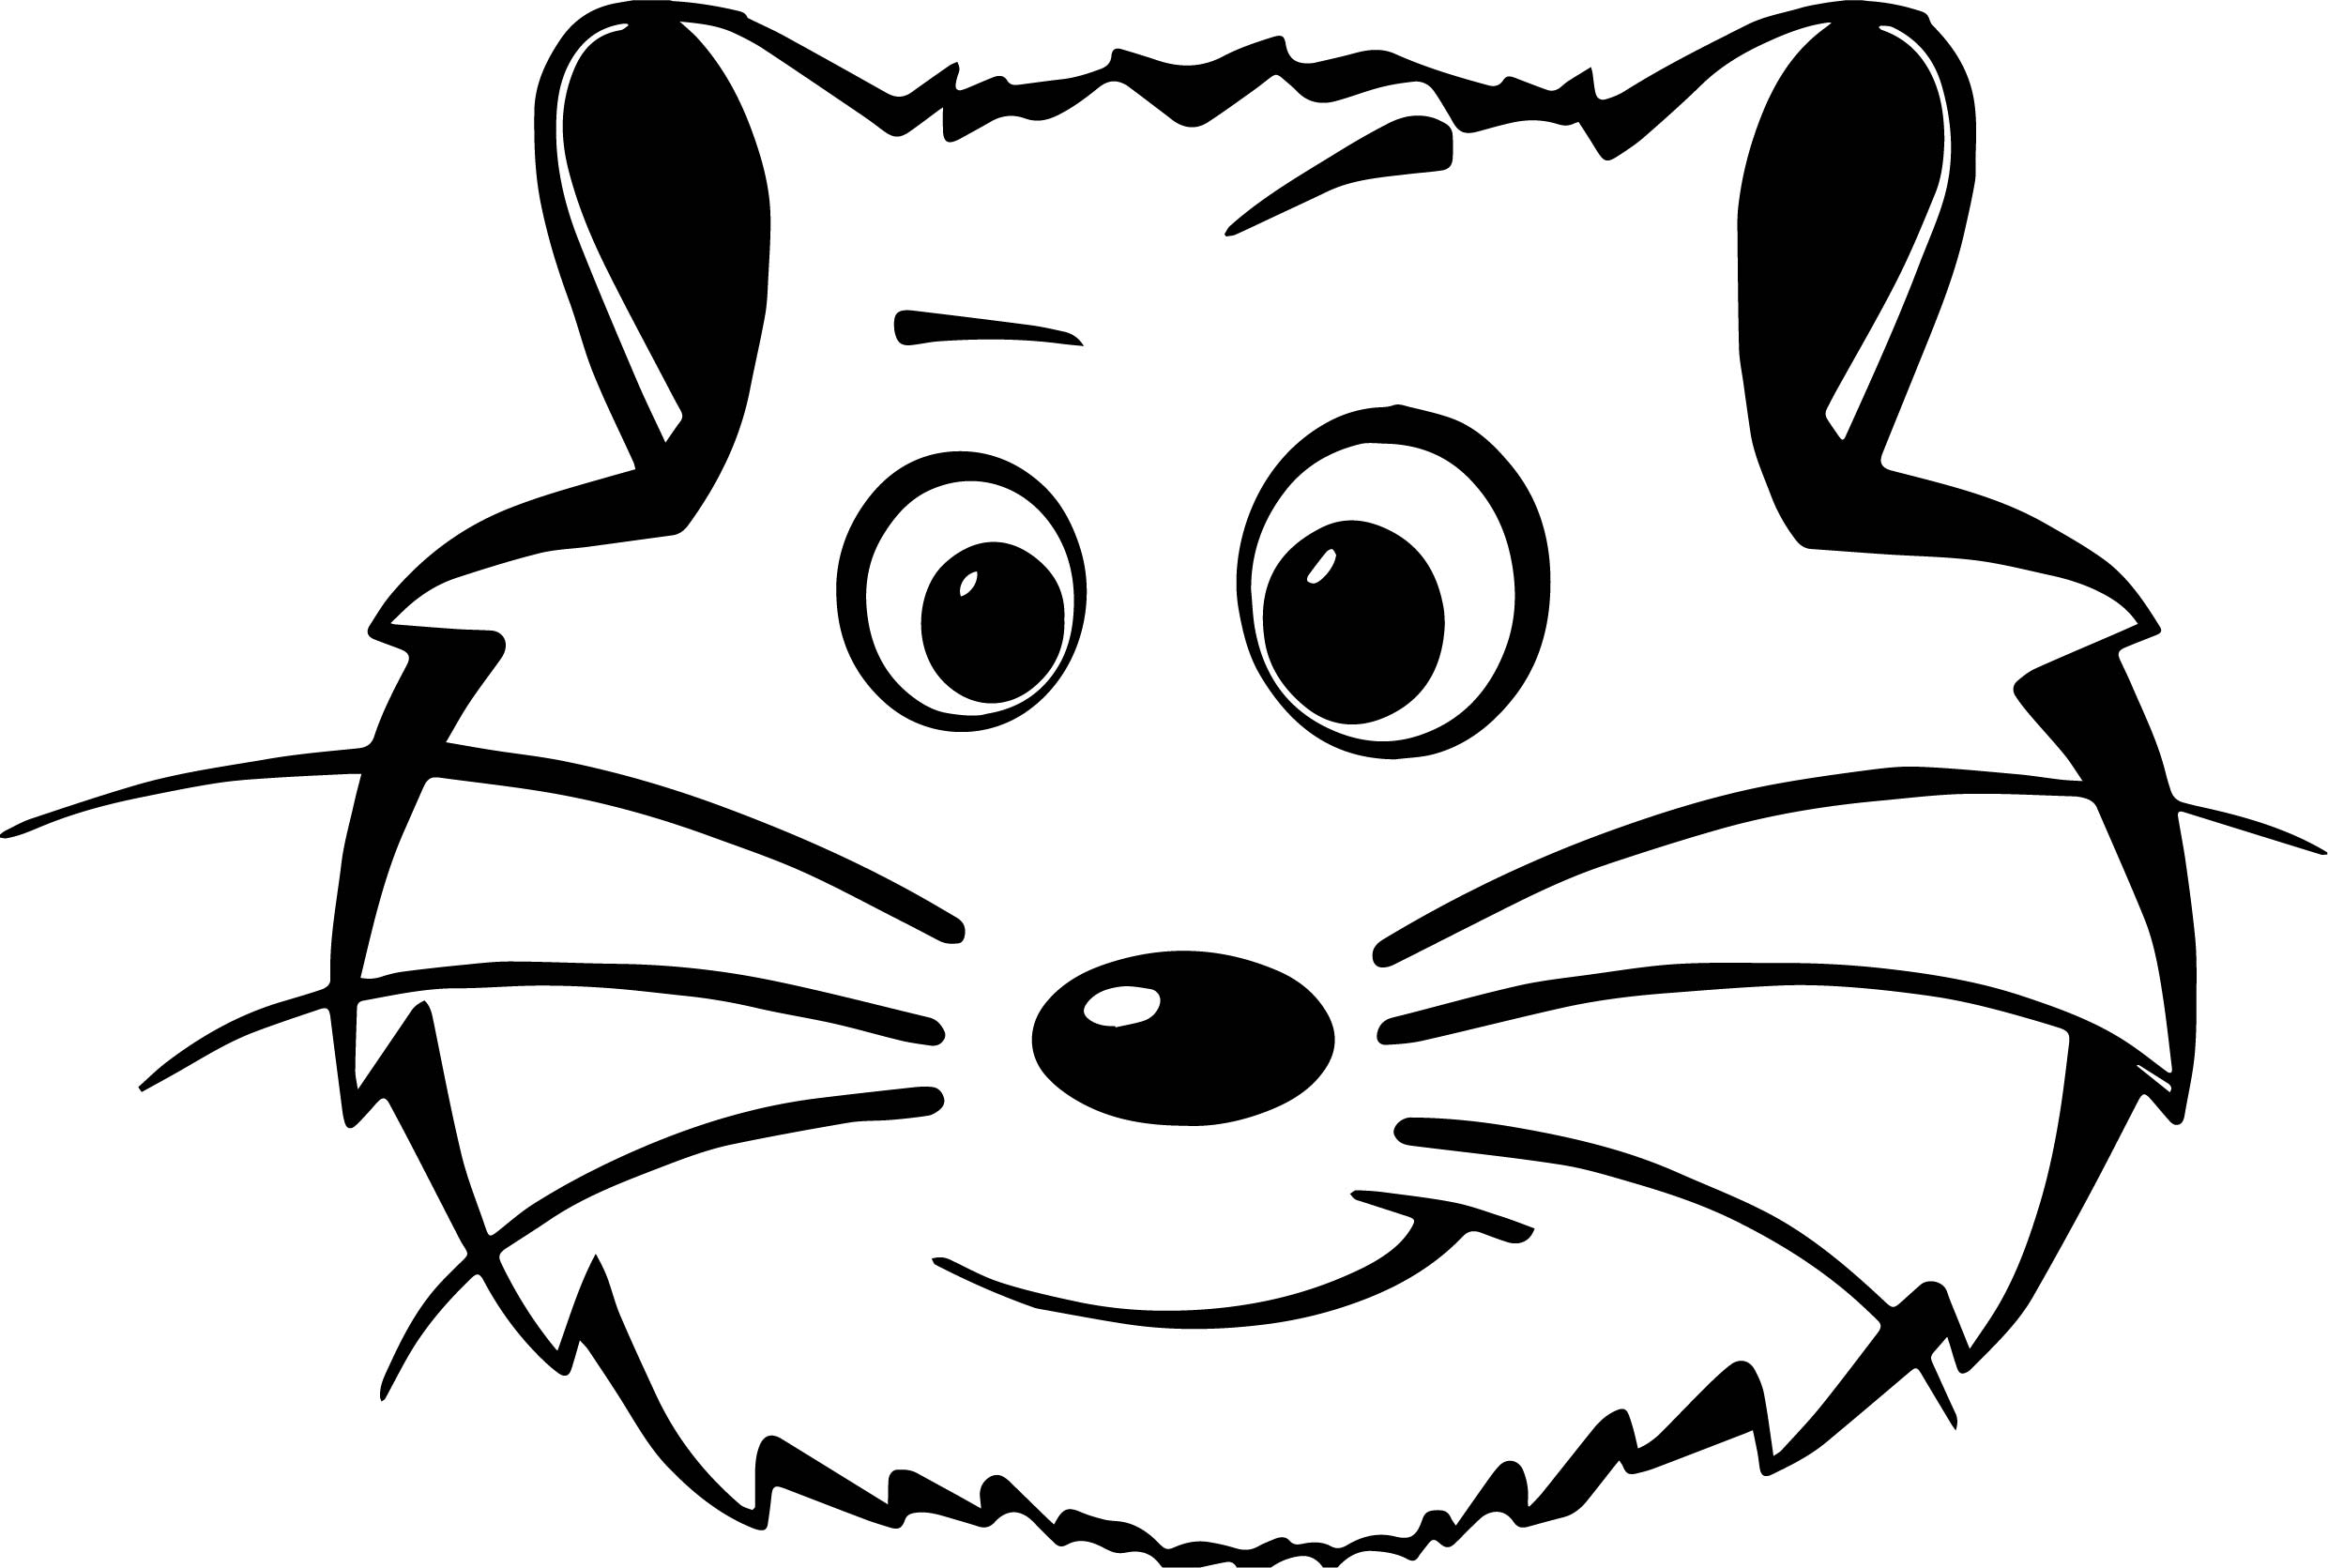 Ic Hamster Face Coloring Page Wecoloringpage